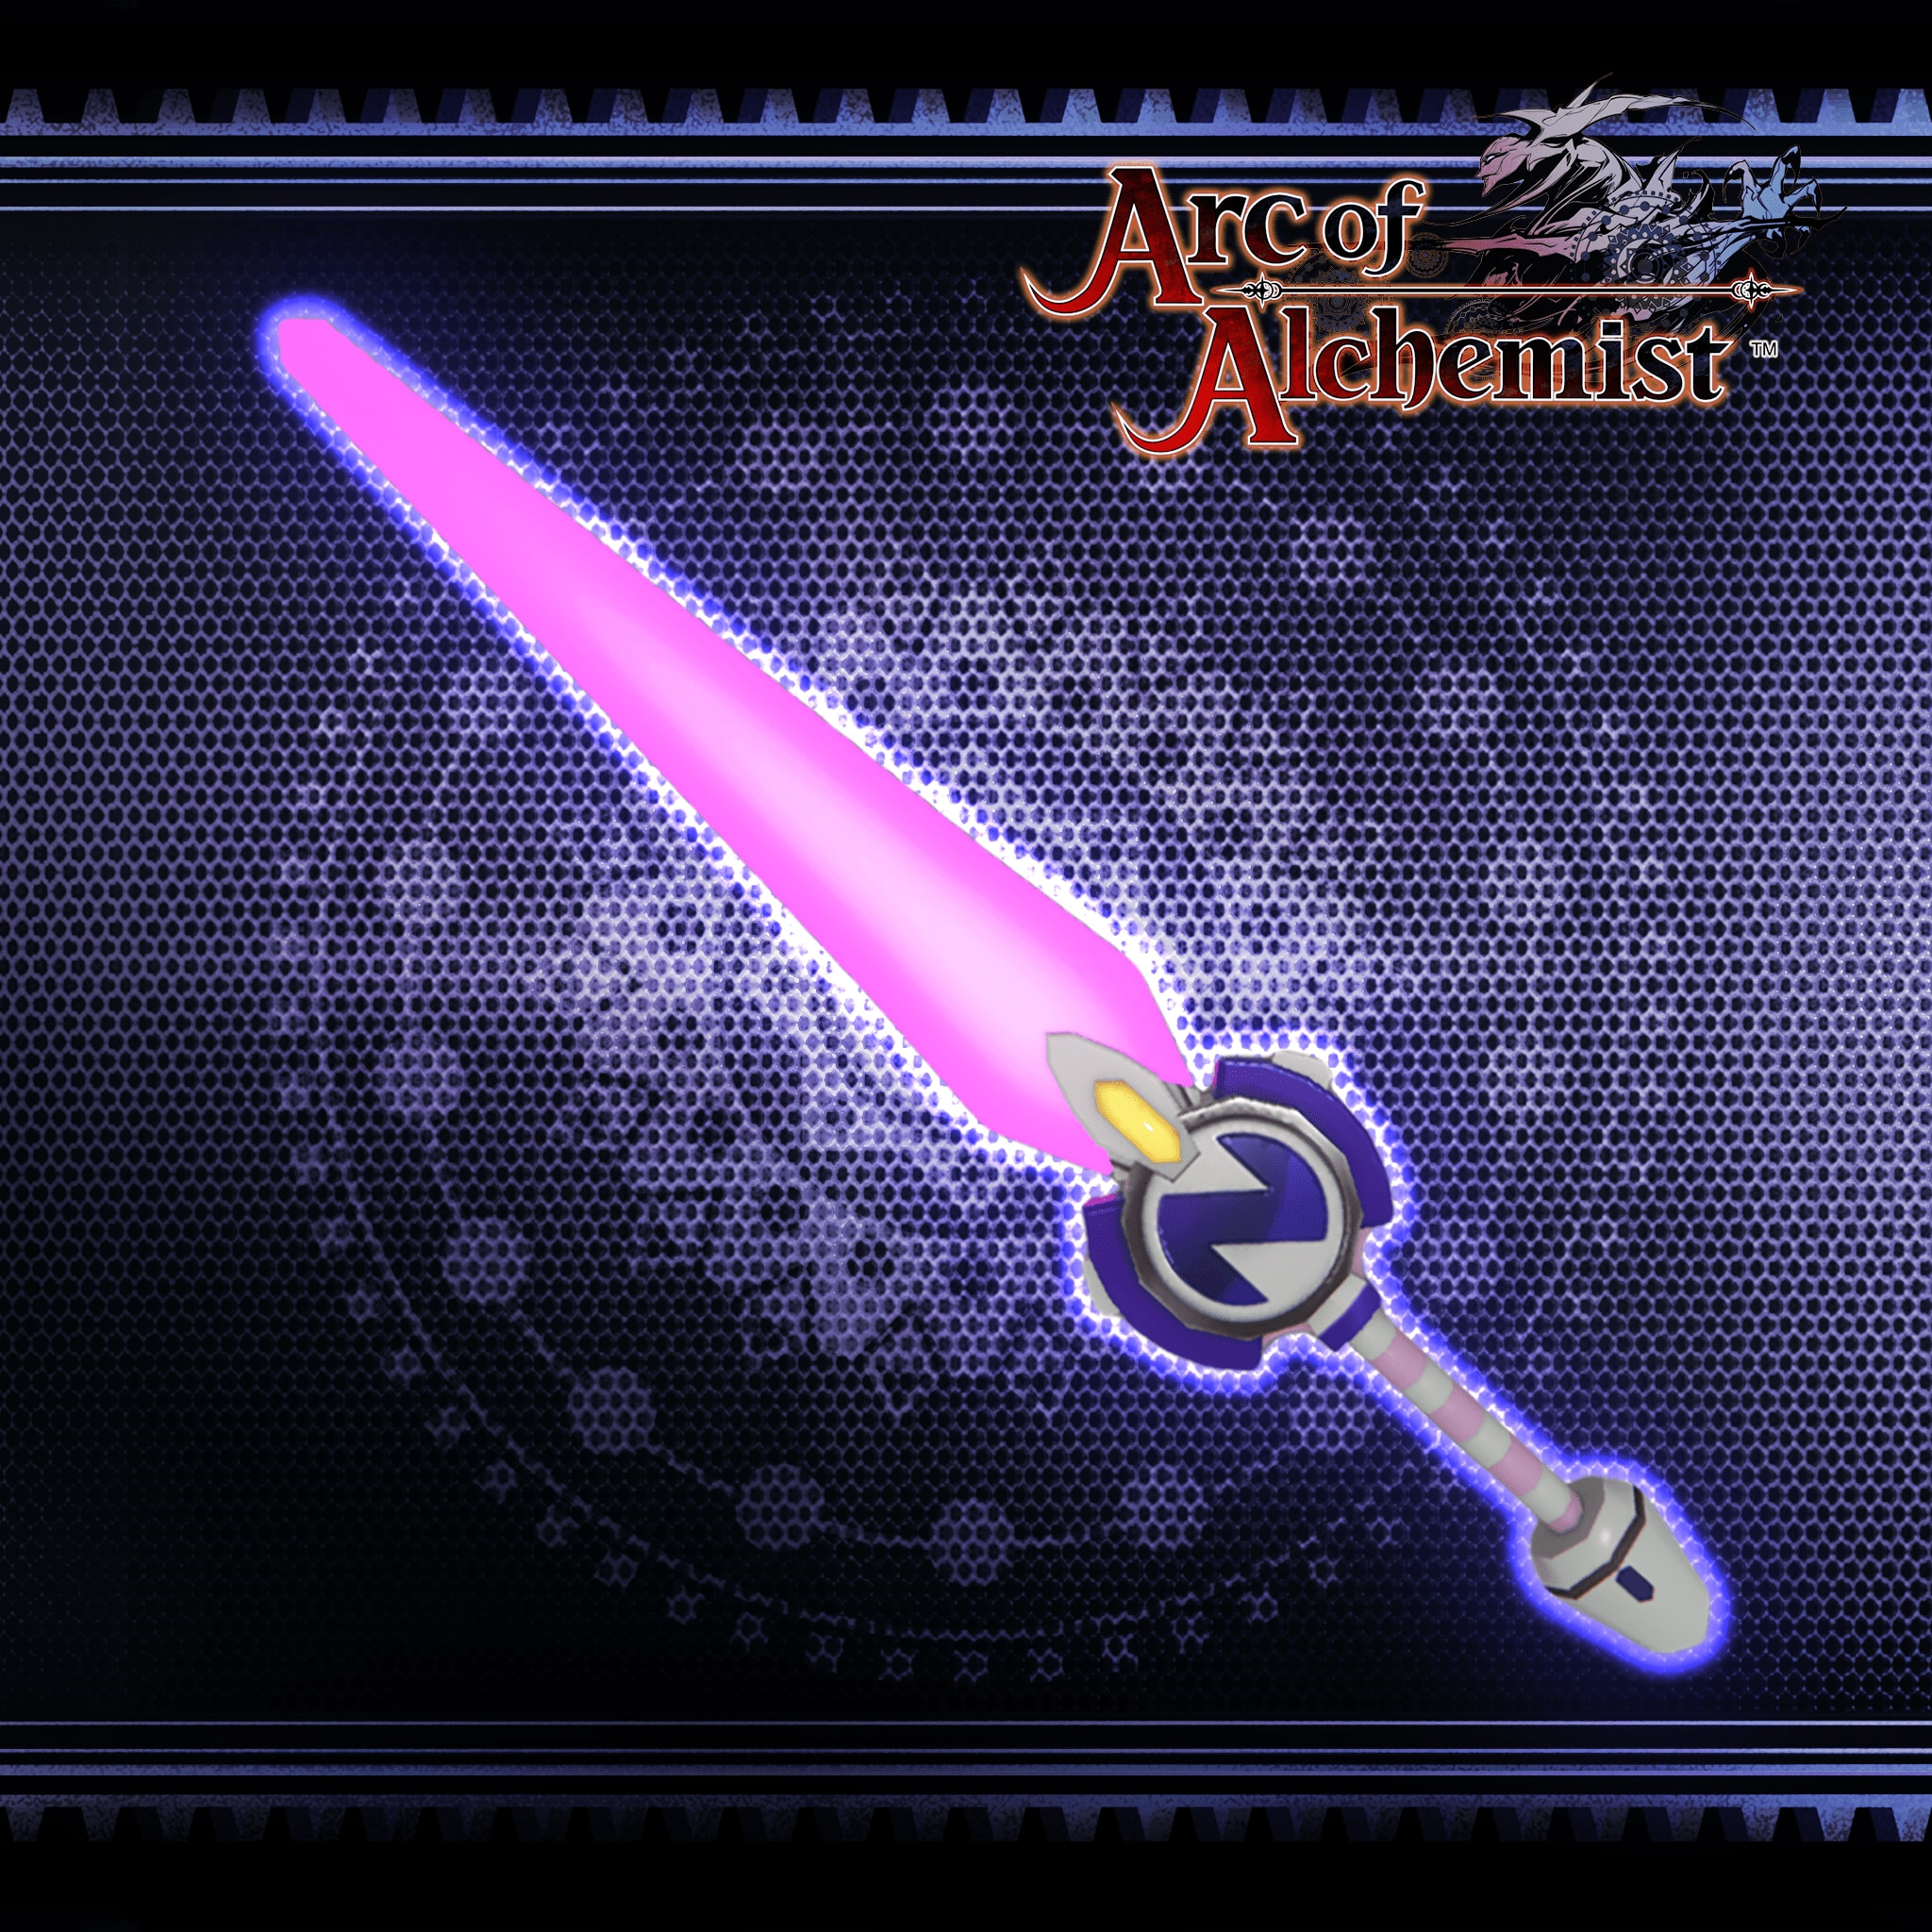 Arc of Alchemist - Special Weapon: Beam Dagger